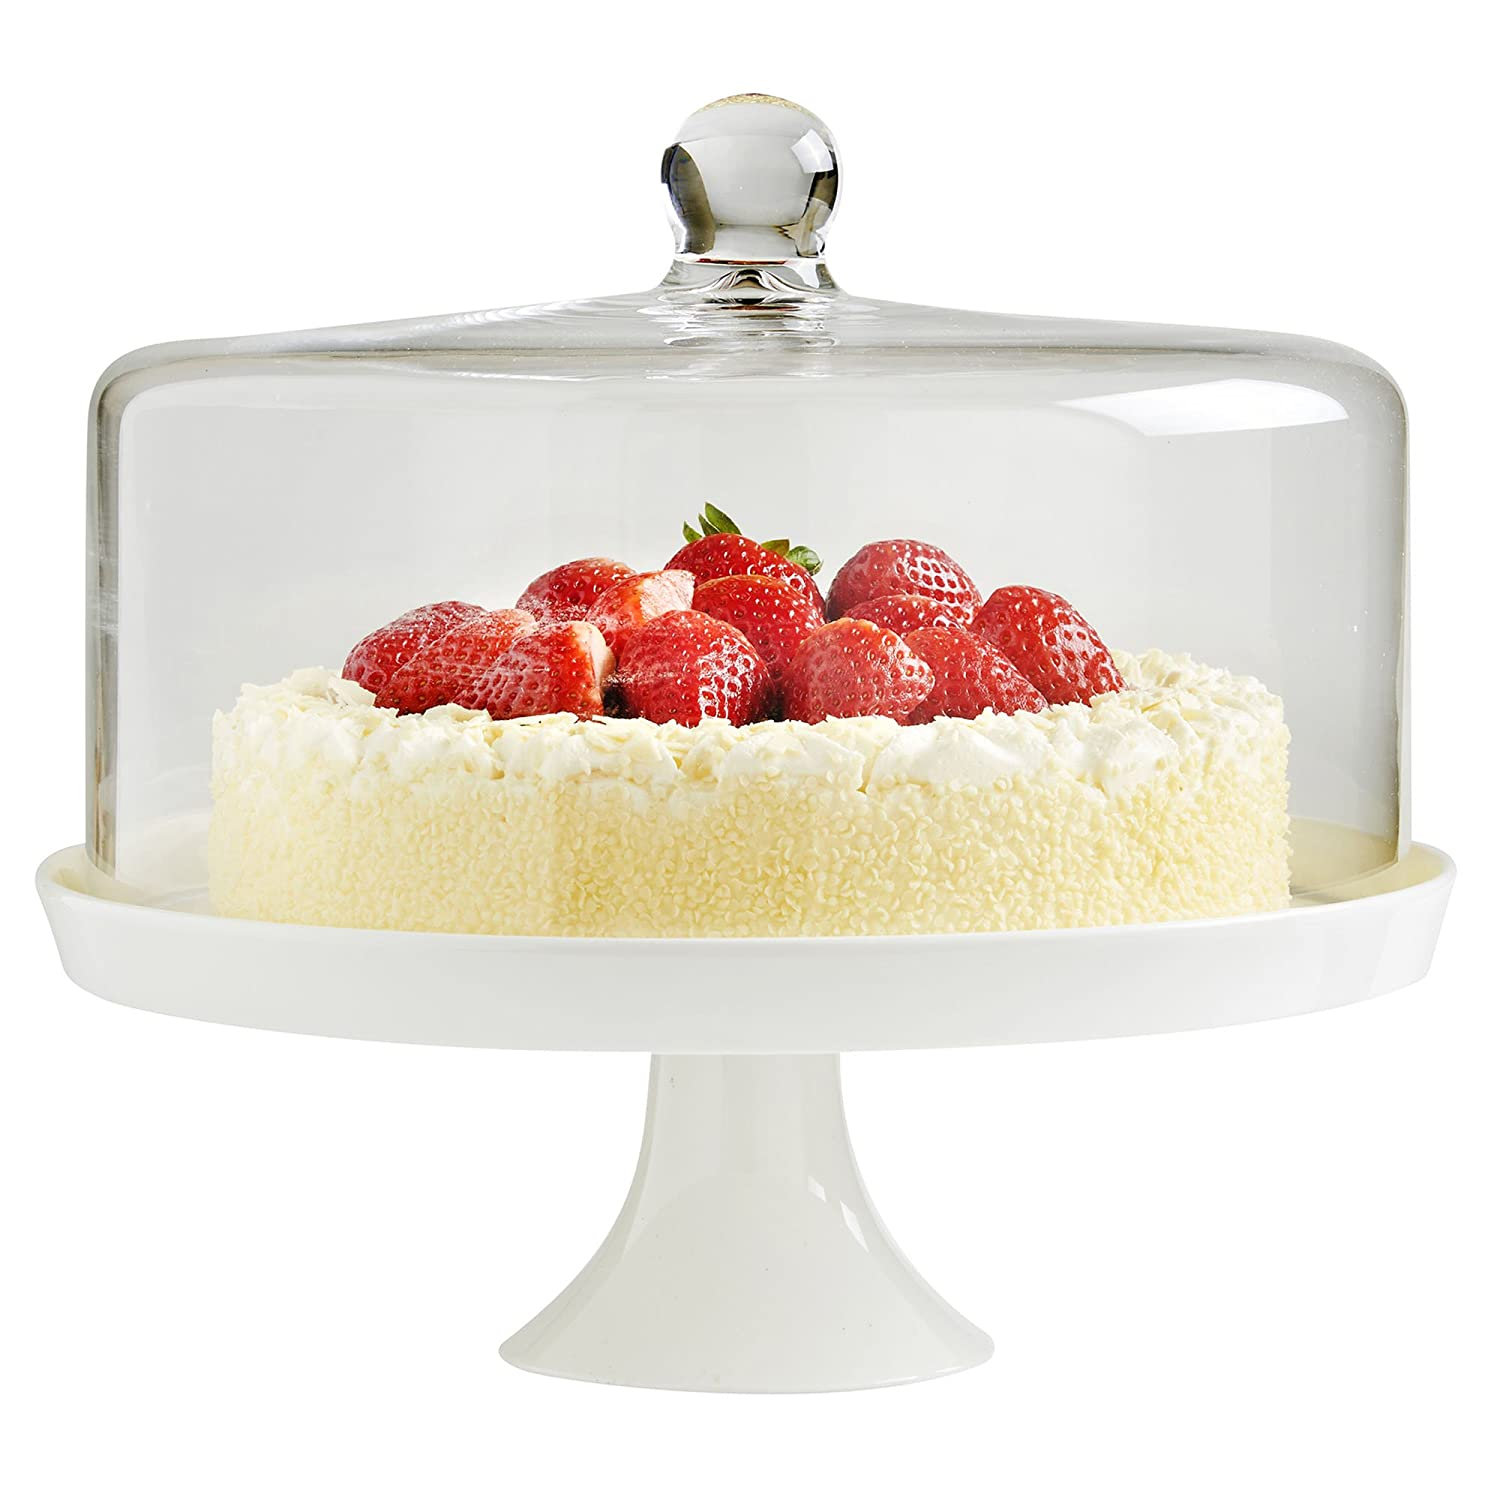 VonShef White Ceramic Cake Stand with Glass Dome Lid 30cm Amazon.co.uk Kitchen \u0026 Home  sc 1 st  Amazon UK & VonShef White Ceramic Cake Stand with Glass Dome Lid 30cm: Amazon.co ...